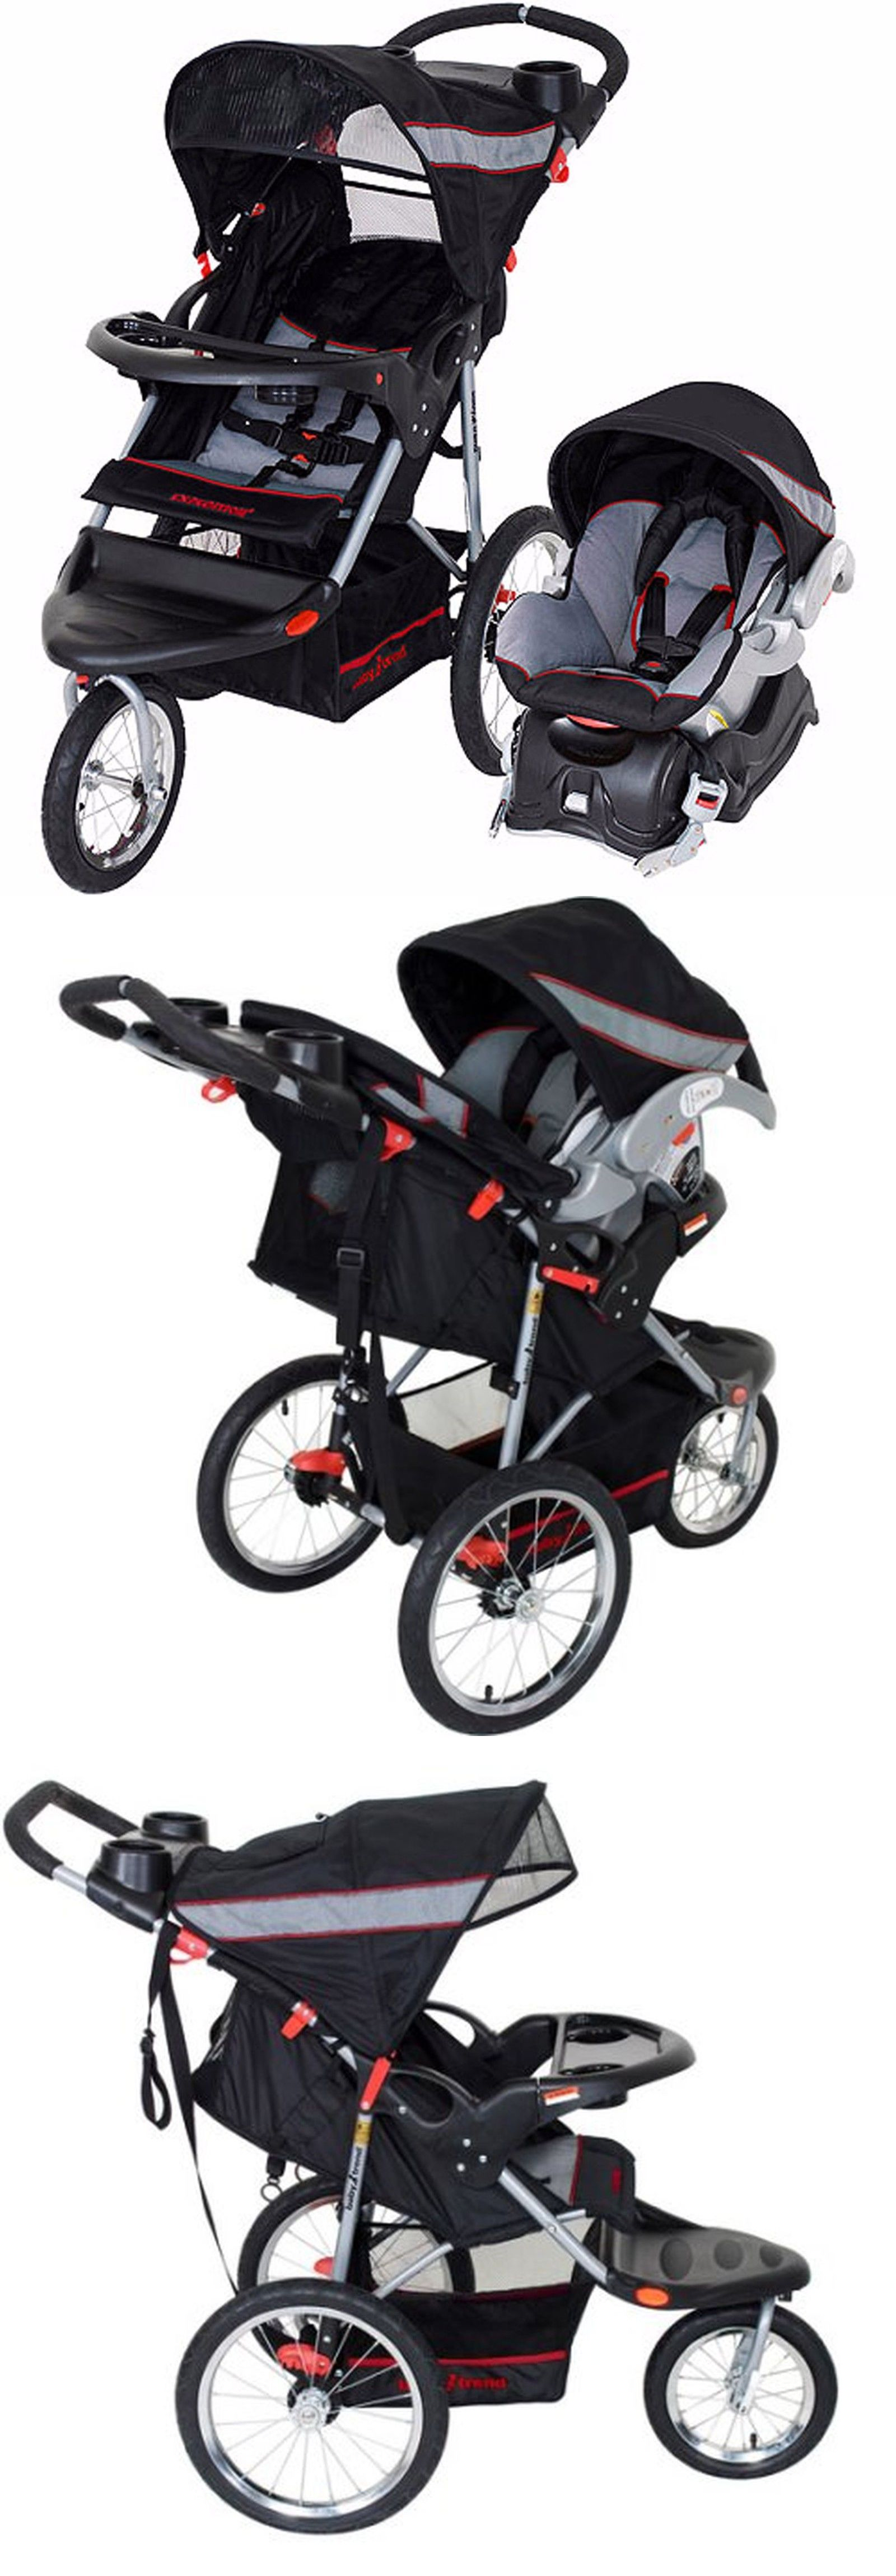 baby and kid stuff Baby Trend Expedition Jogger Travel System Millennium 3In1 Stroller Car Seat